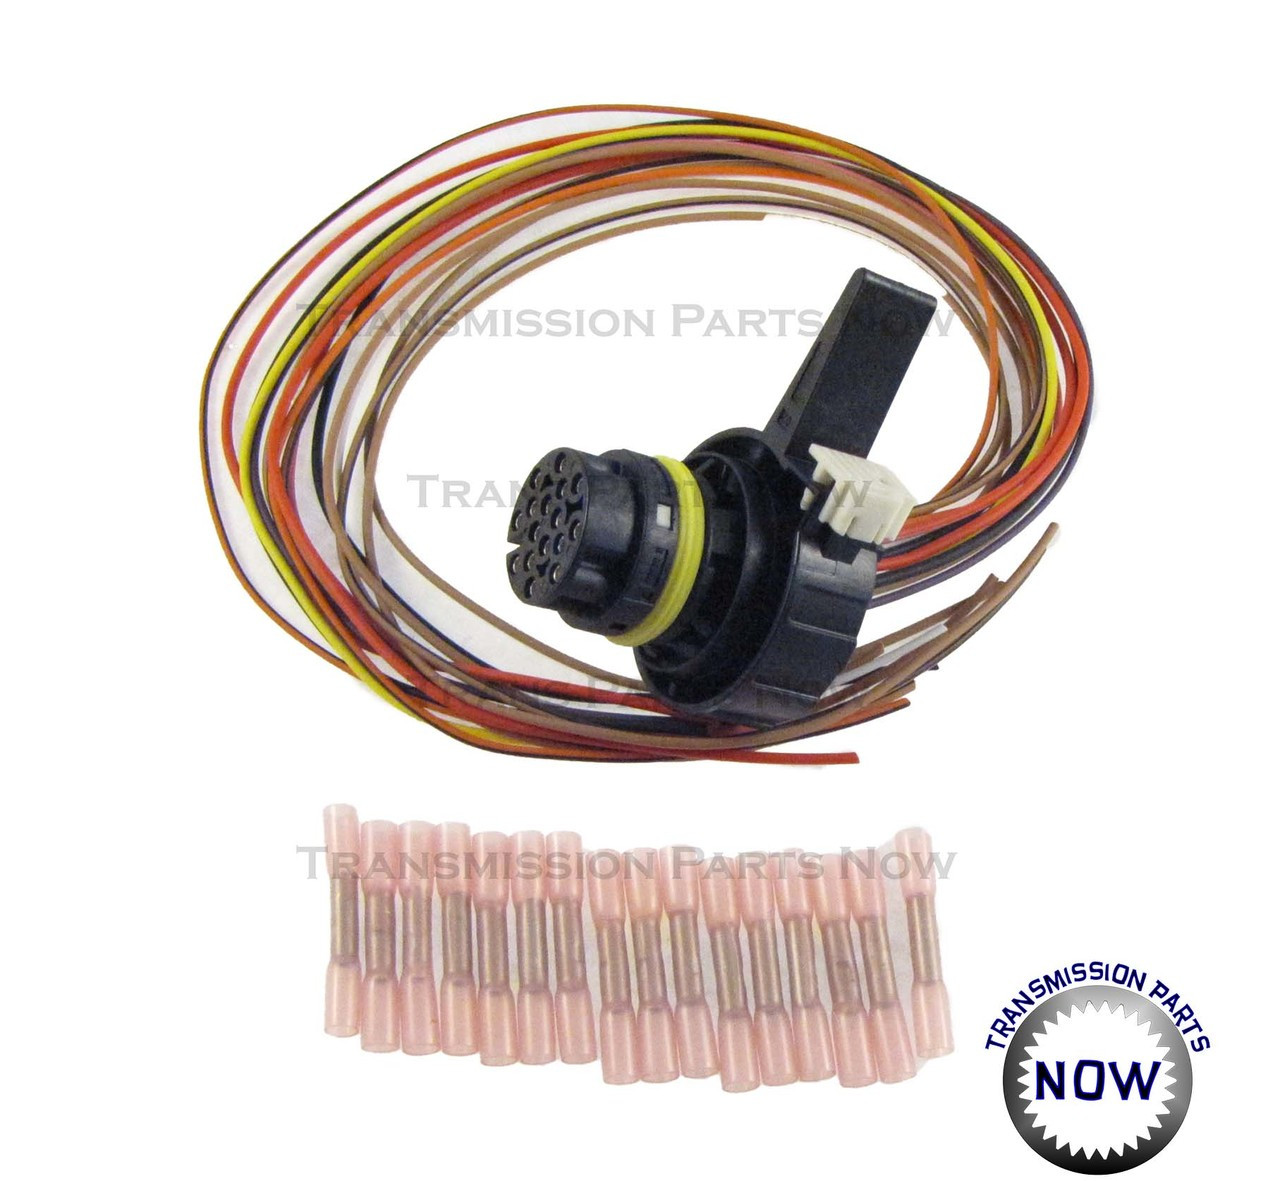 6L80 Connector repair kit, Rostra, Fast free shipping to the USTransmission Parts Now